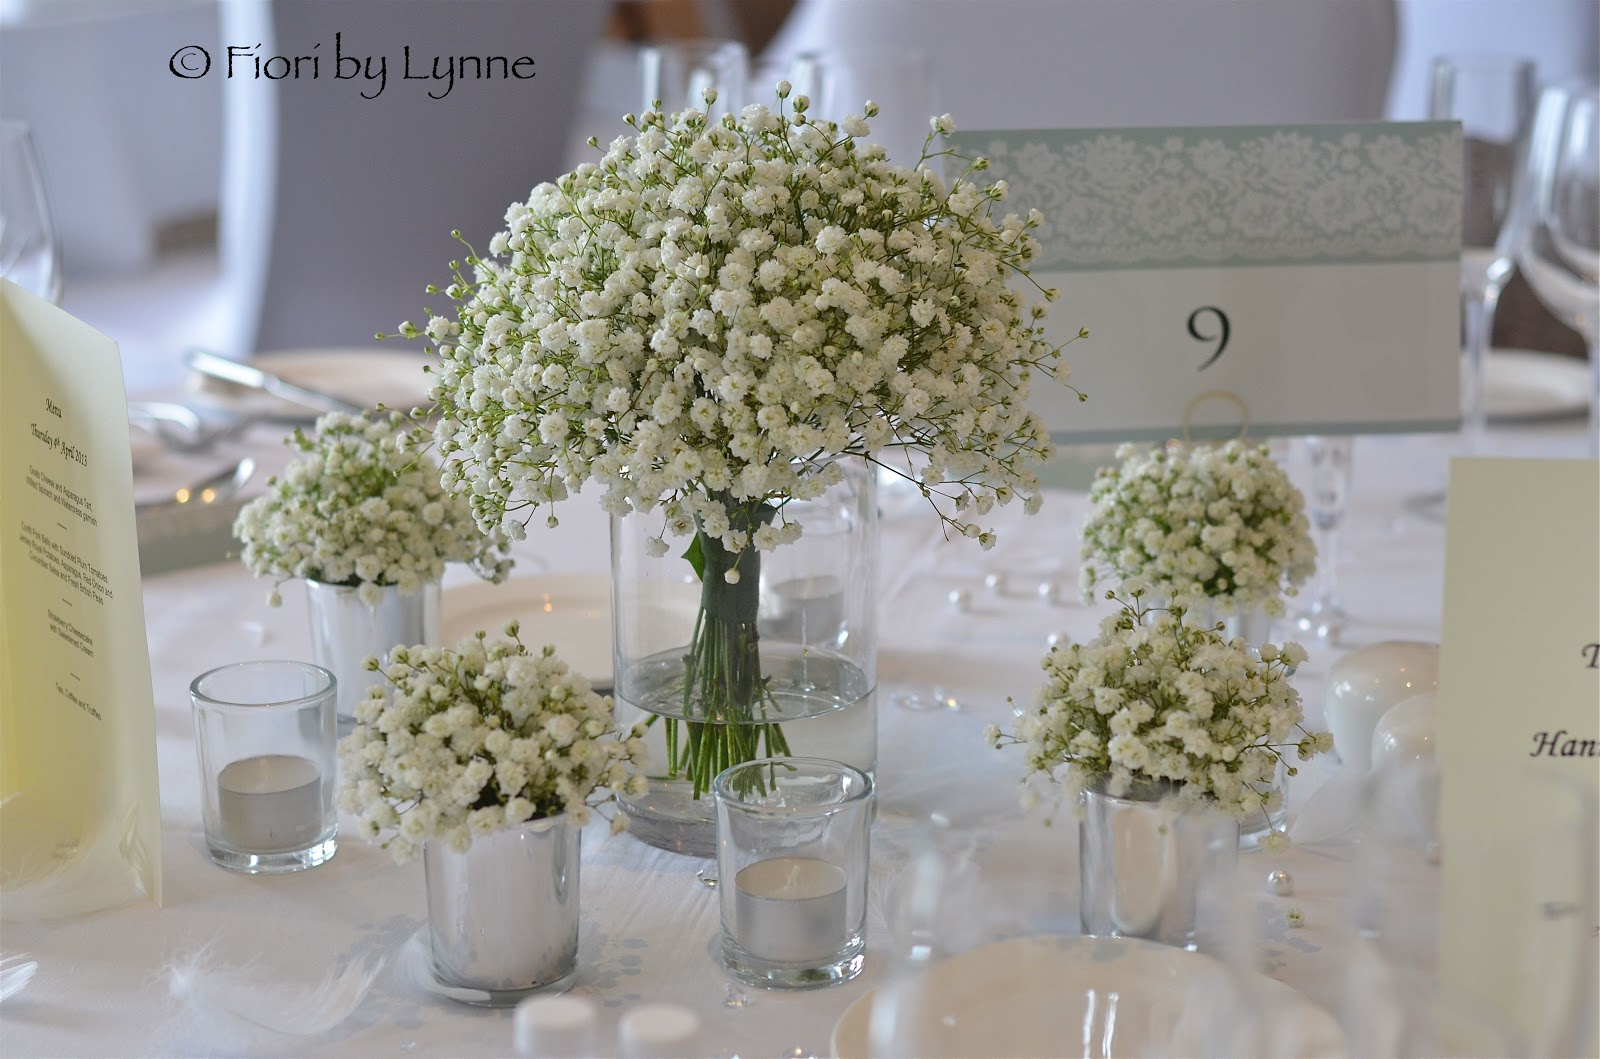 Wedding flowers blog hannah 39 s vintage wedding flowers - Centre de table vase cylindrique ...